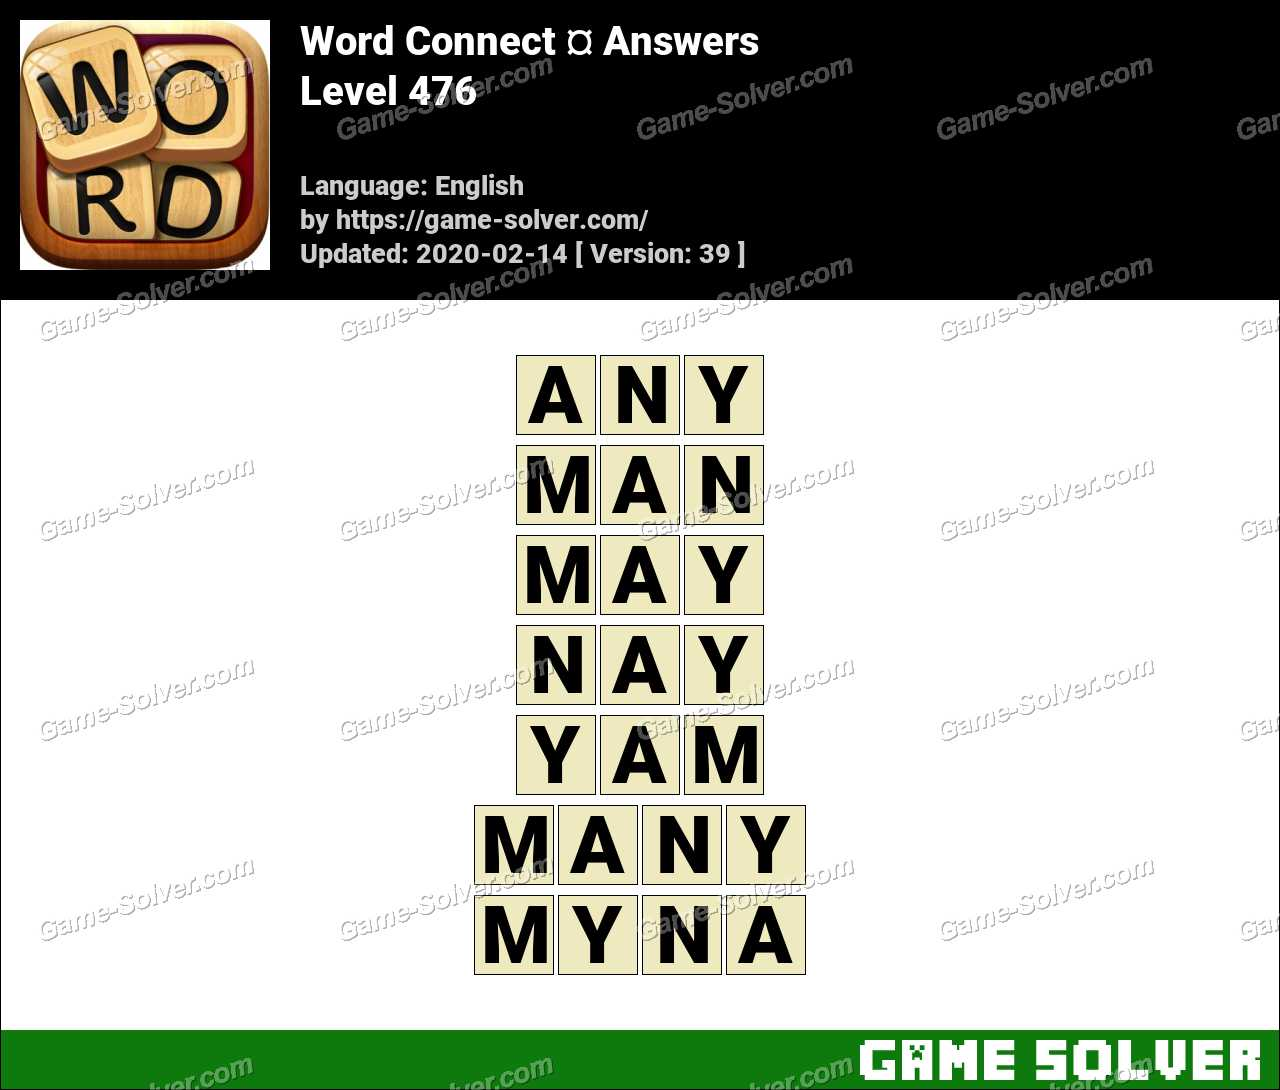 Word Connect Level 476 Answers